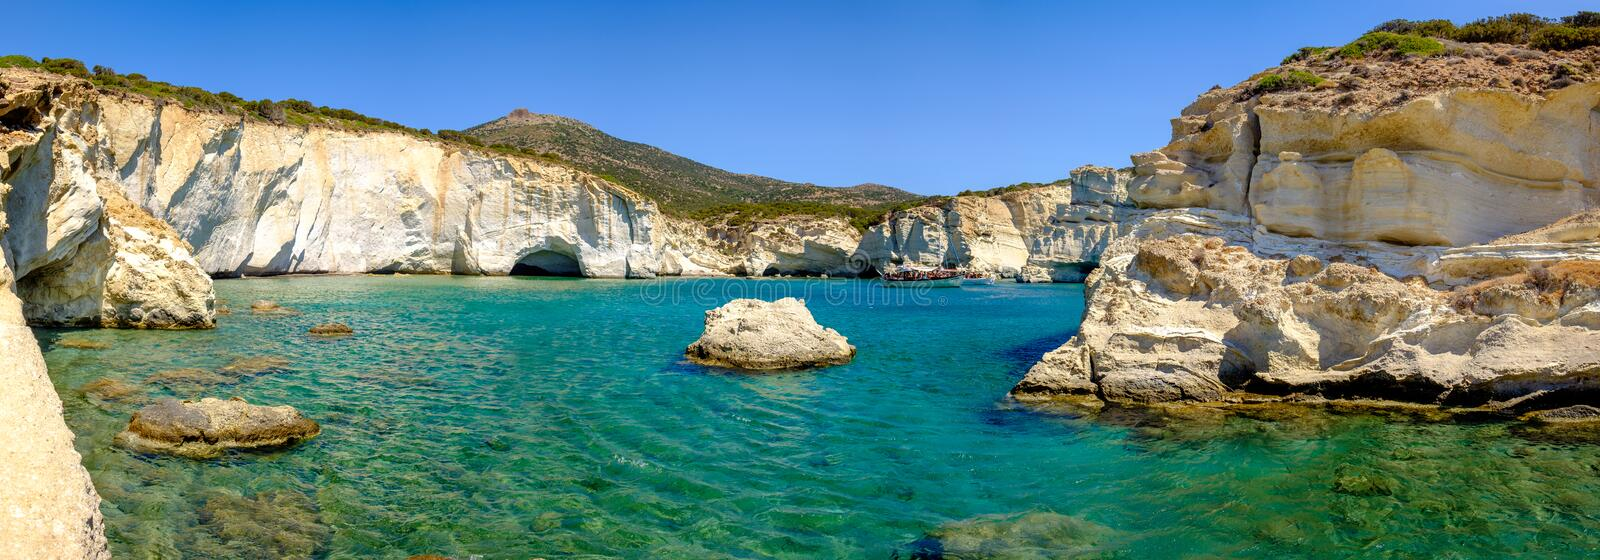 Panoramic view of rocky coastline and turqouise water, Milos, Gr stock images